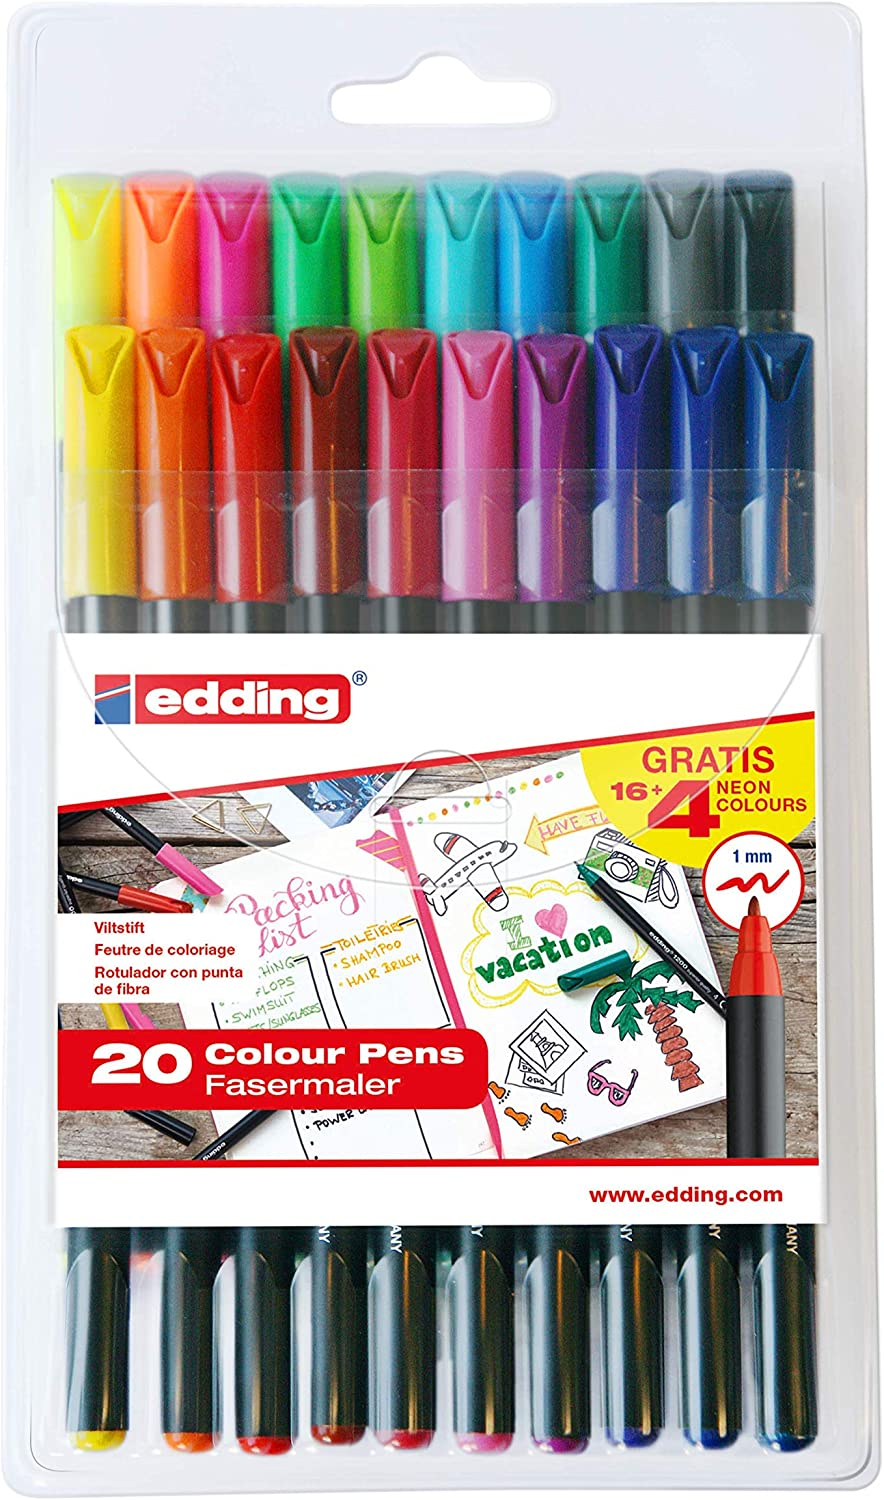 Edding e1200-20S - PACK con 16+4 ROT. 1200. COLORES 1-12, 14, 17, 19, 20, 64, 65, 66, 69, Multicolor